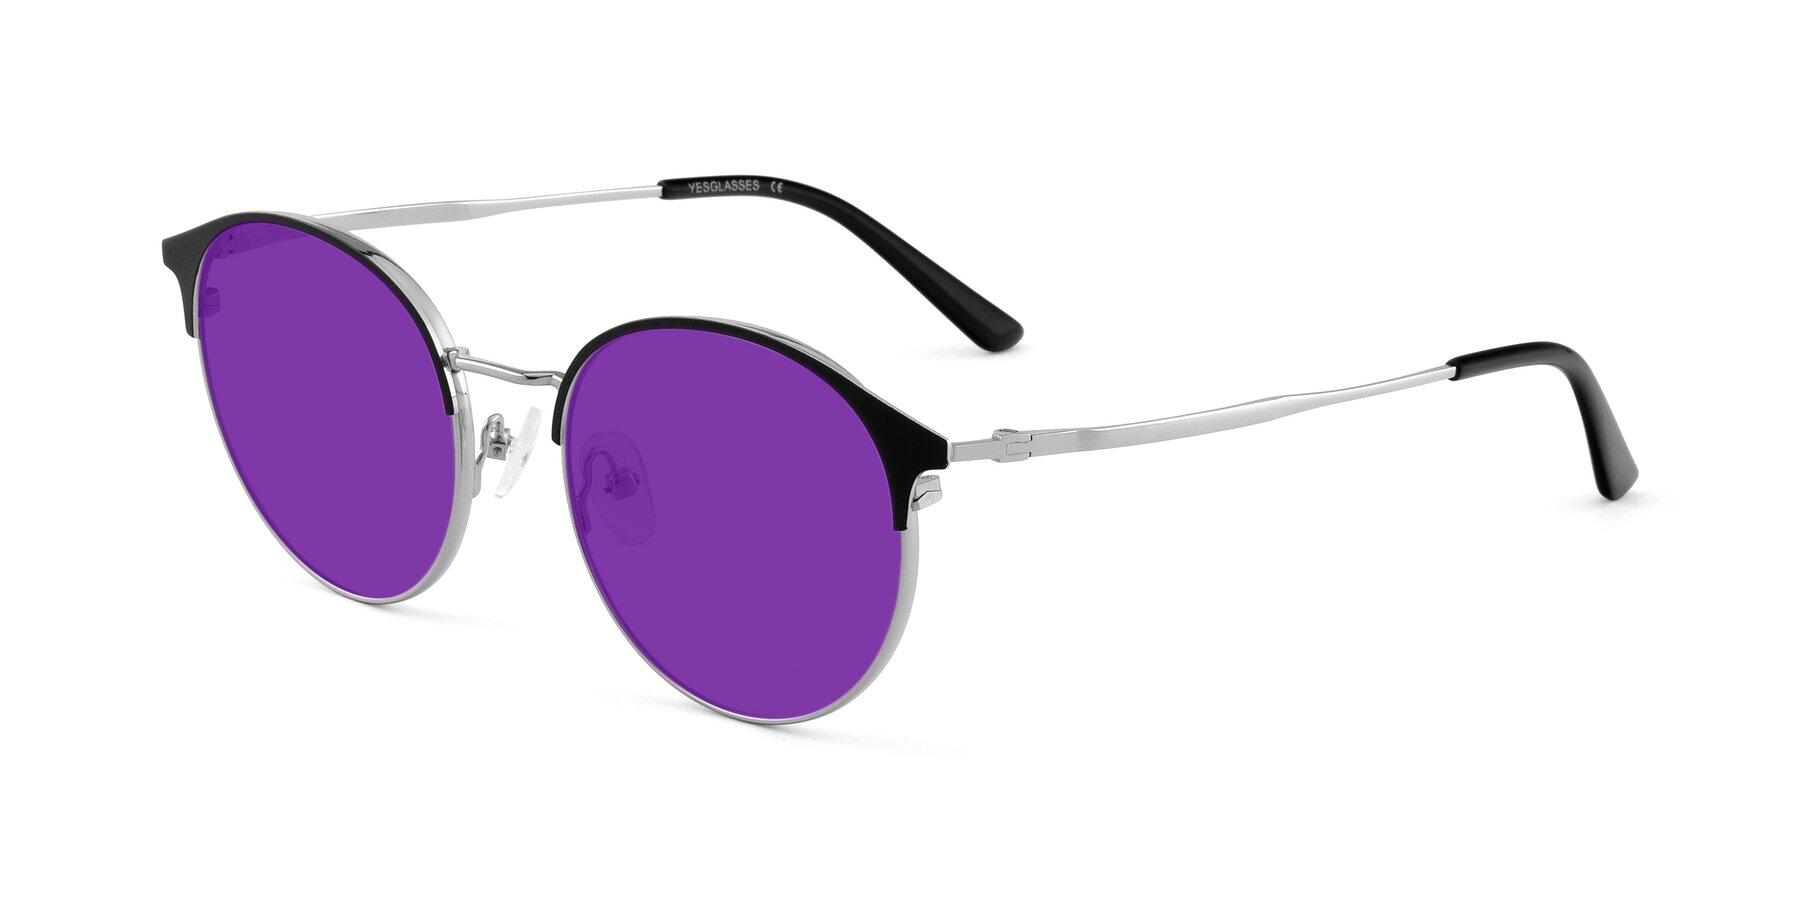 Angle of Berkley in Black-Sliver with Purple Tinted Lenses